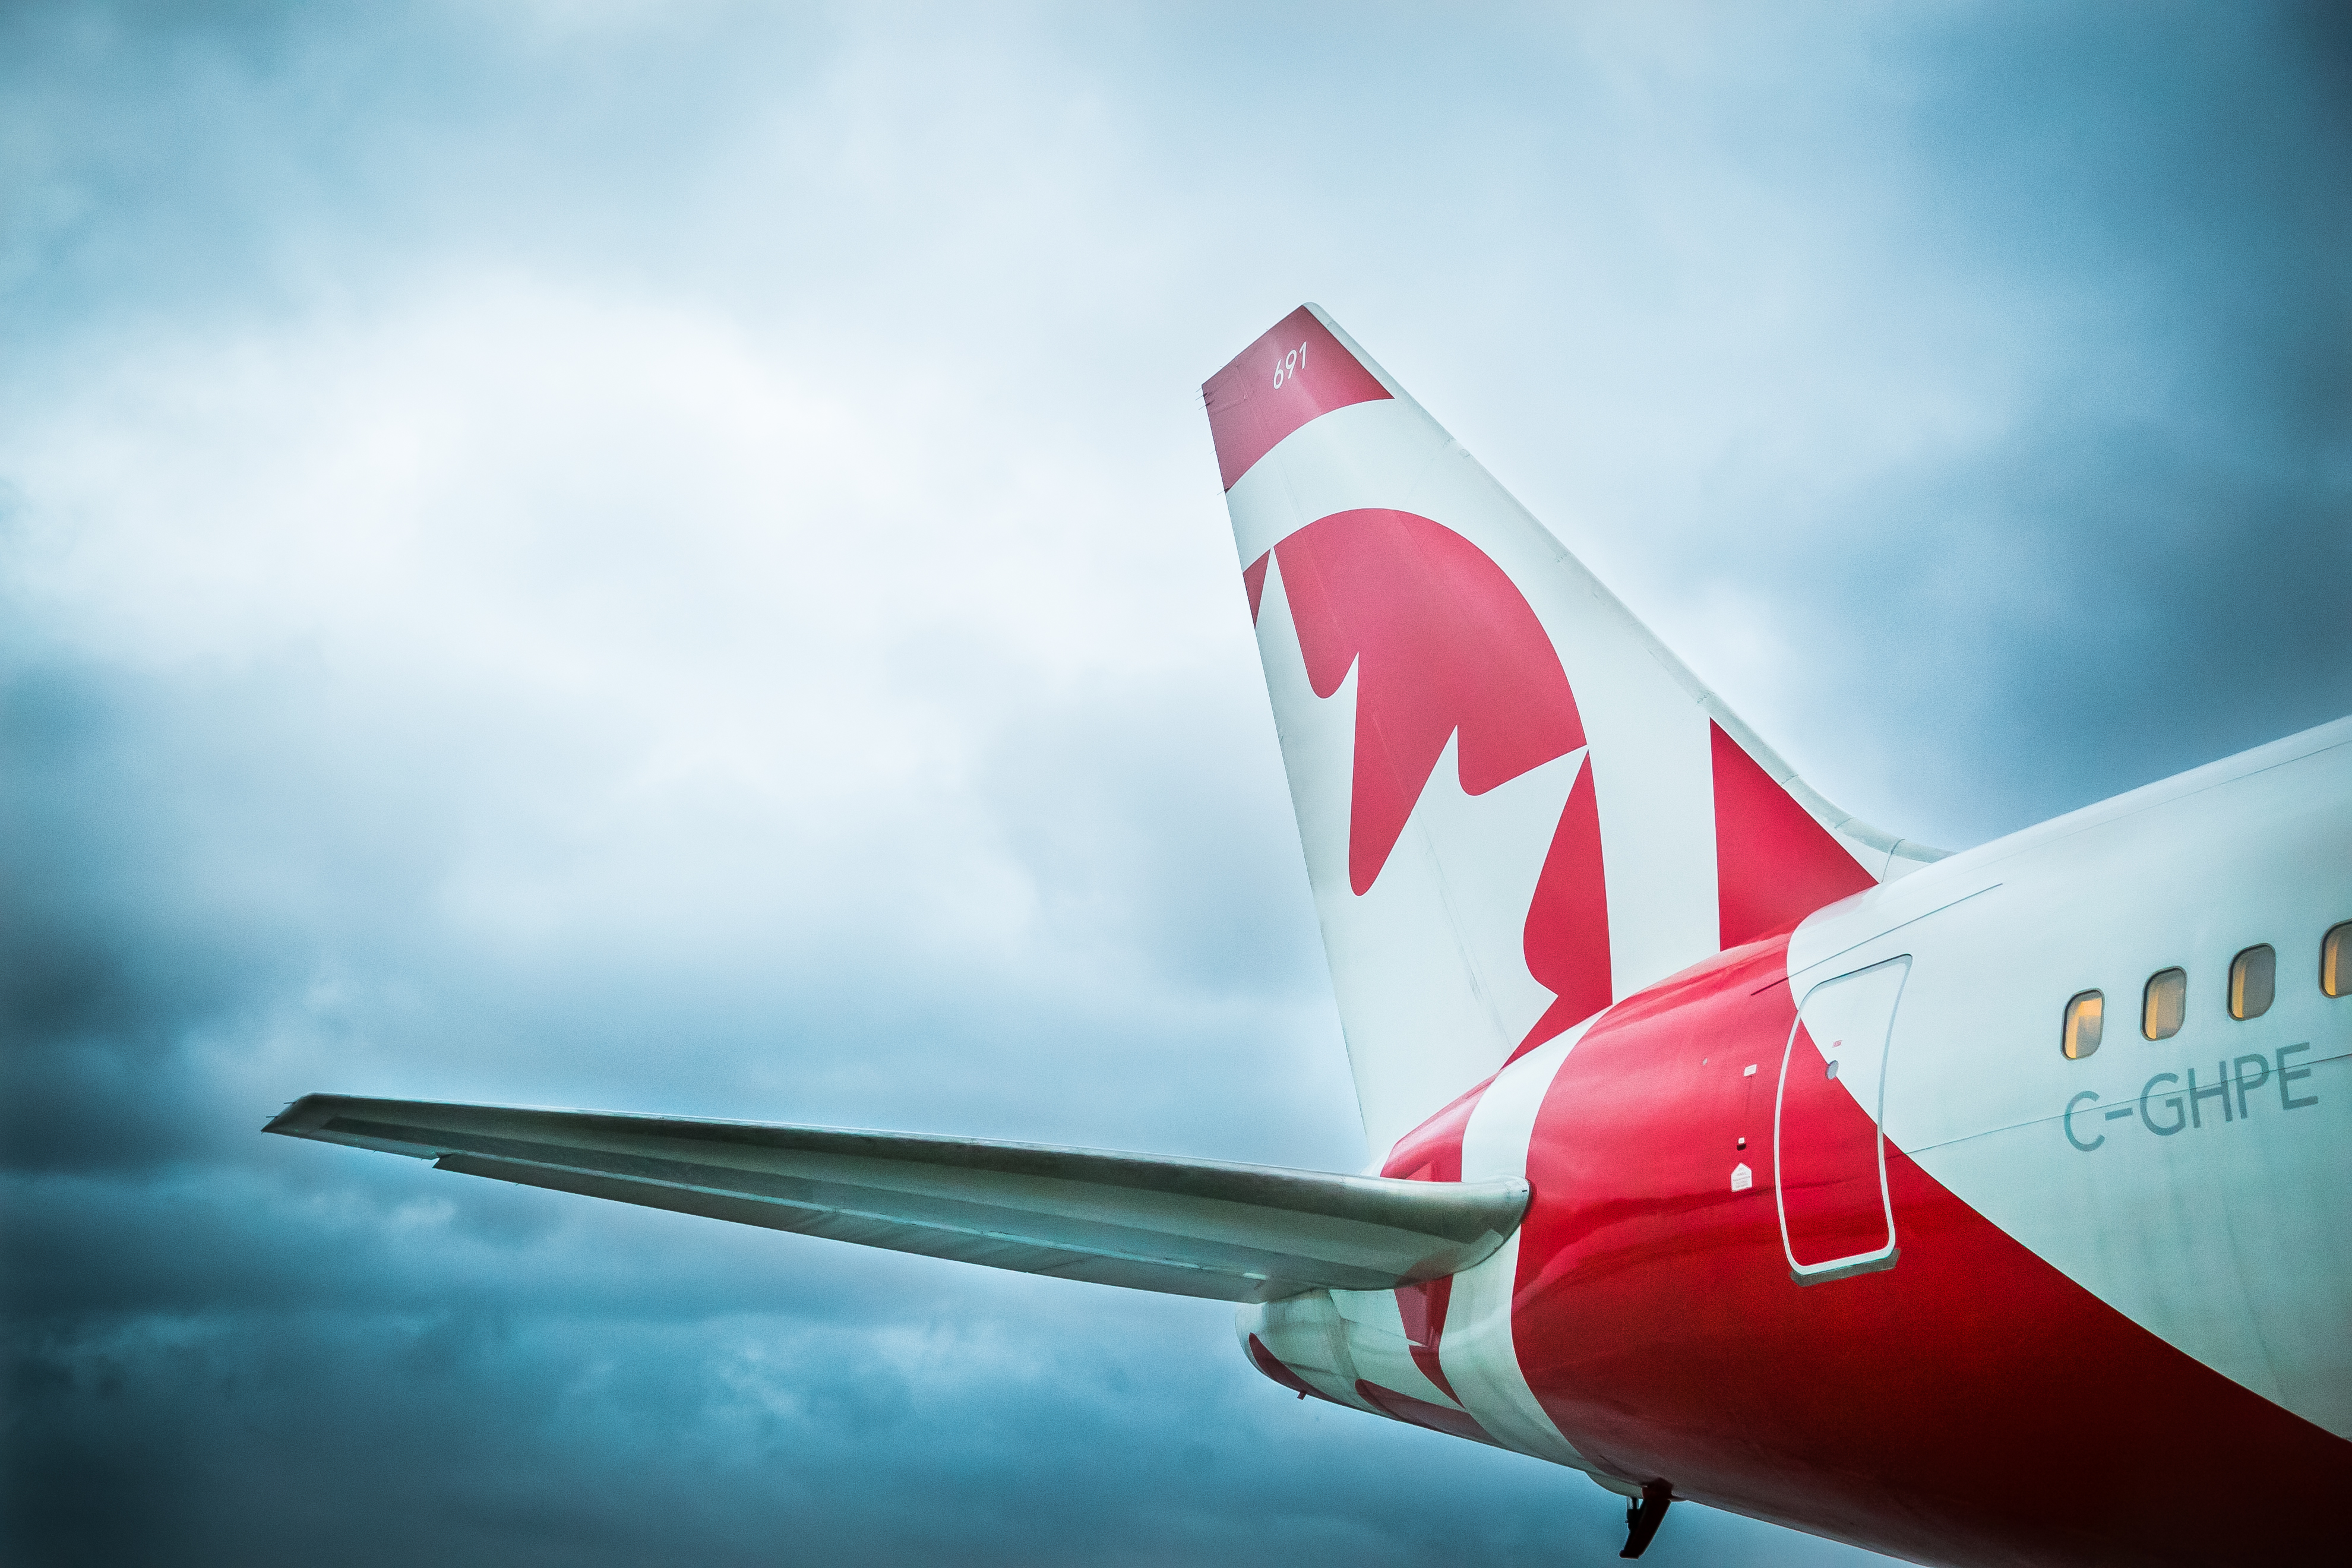 Air canada rouge tail